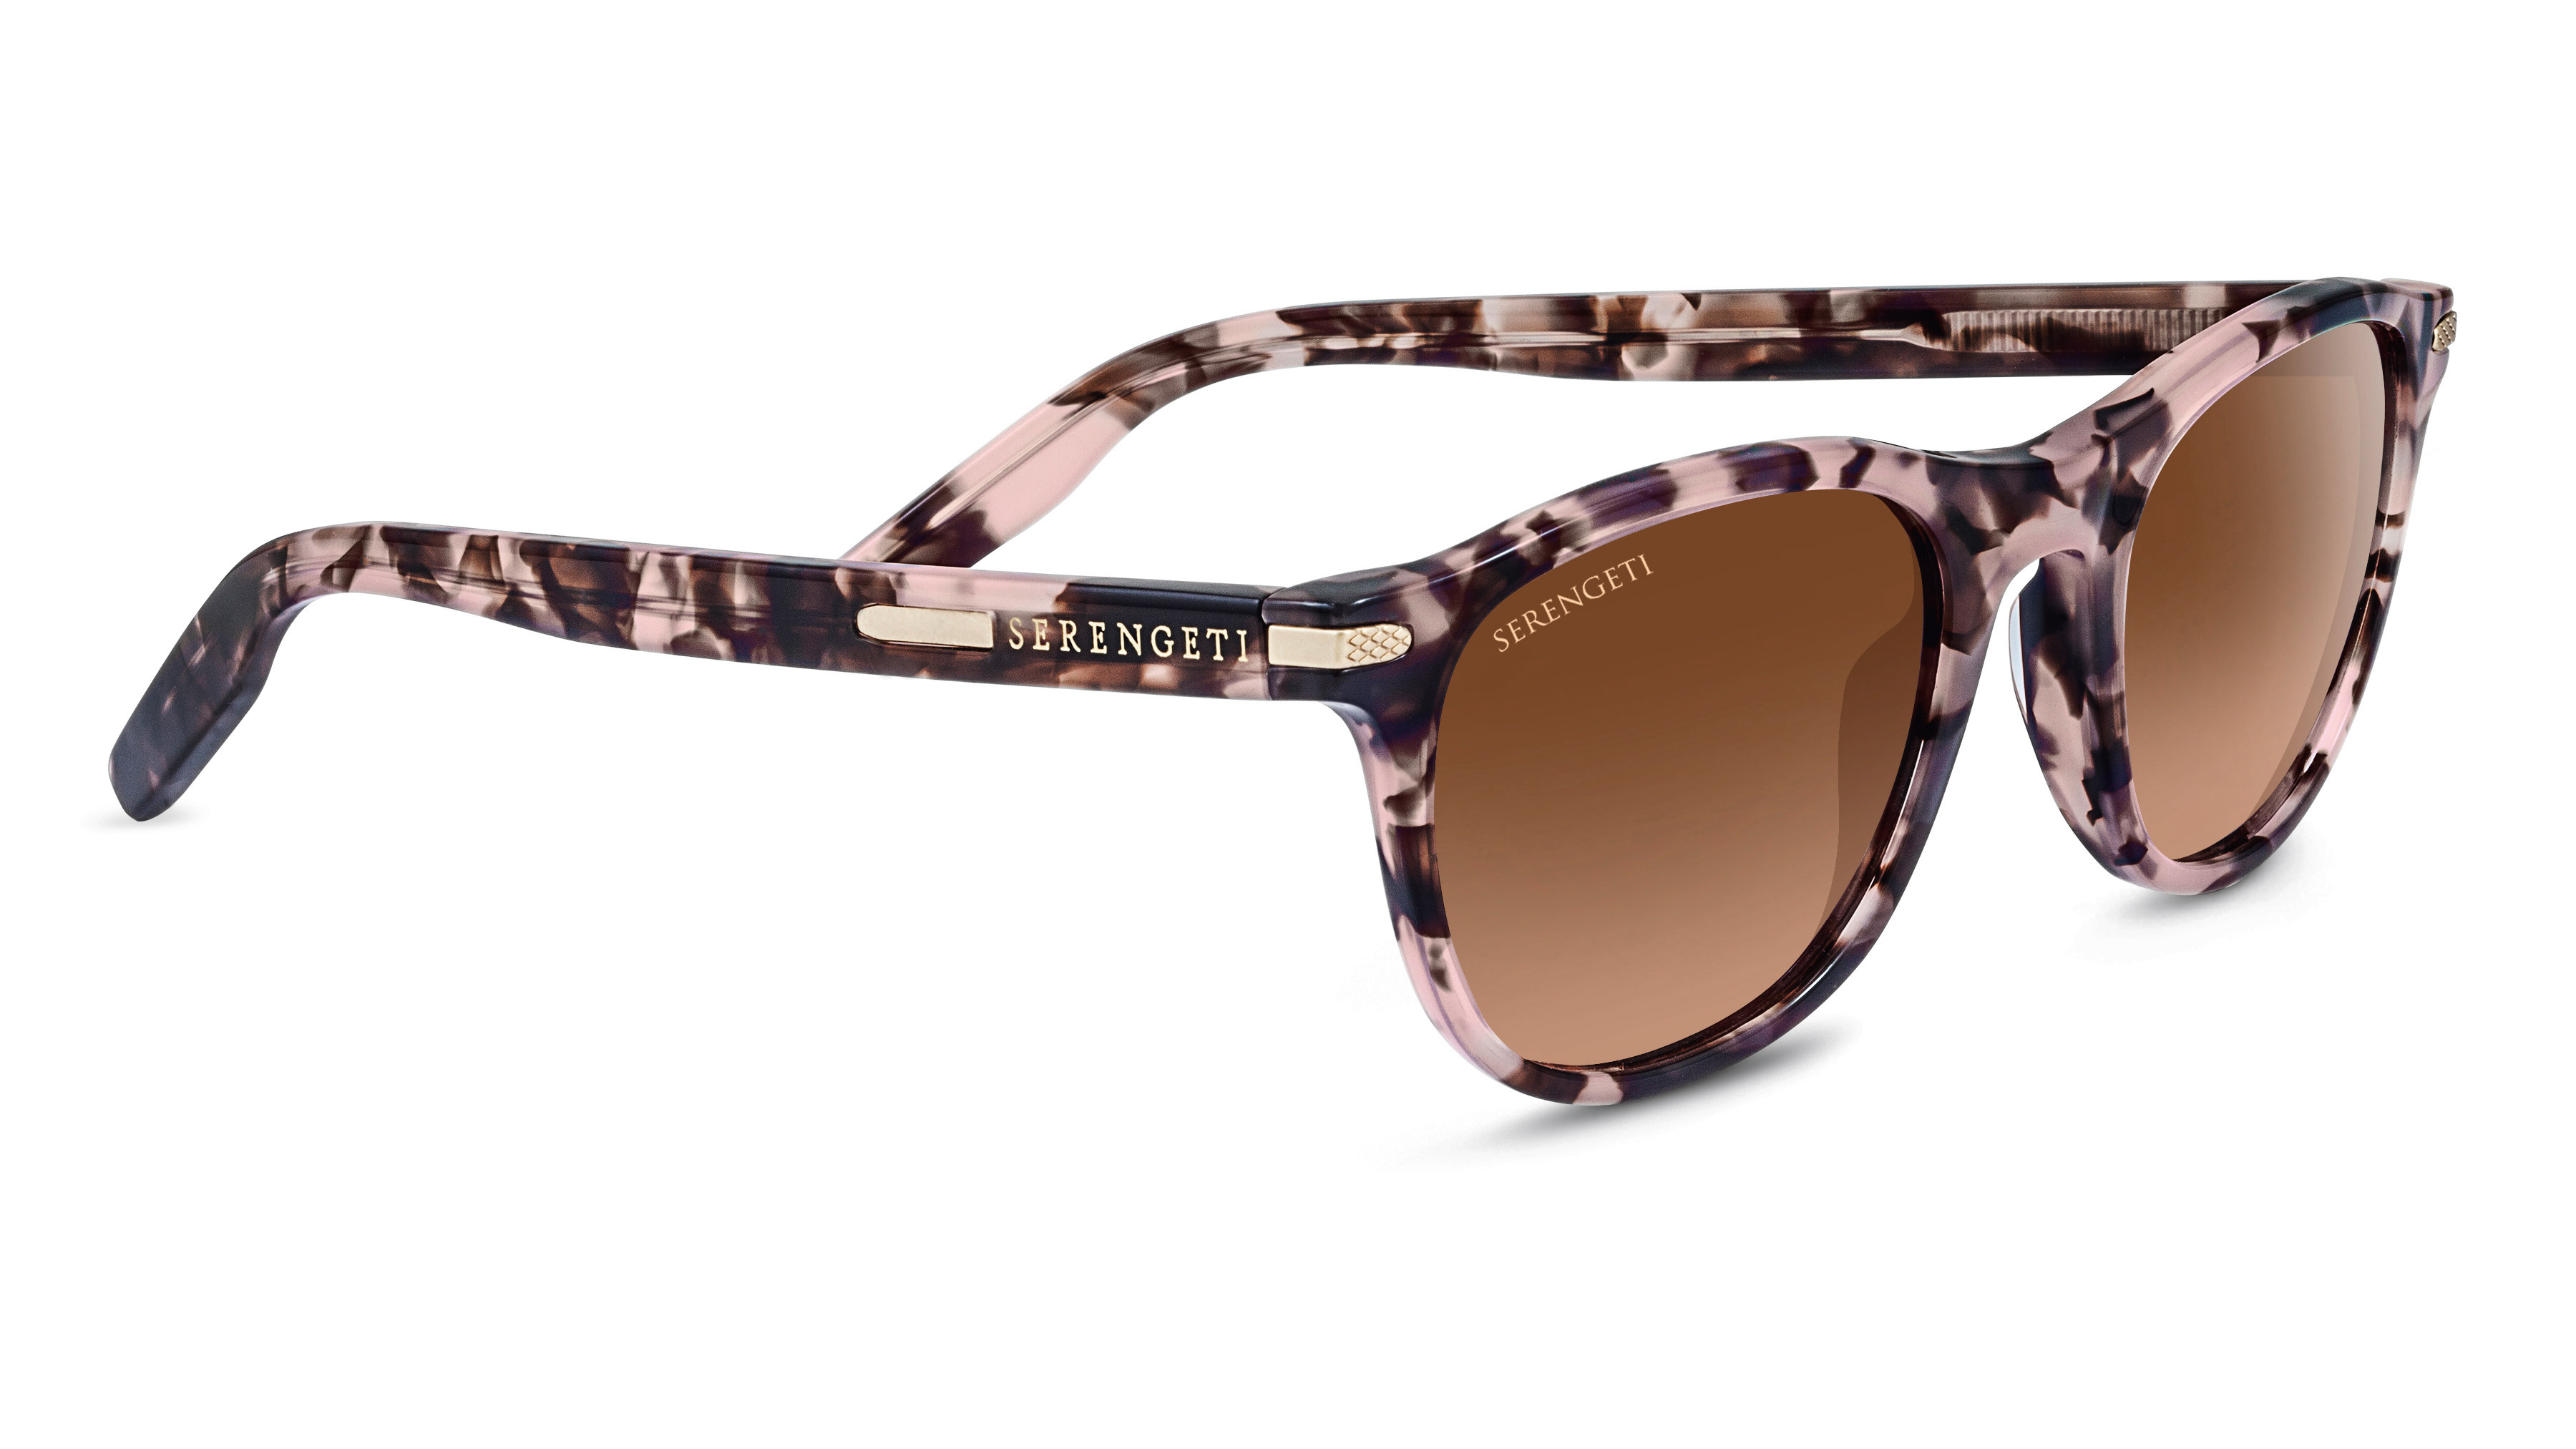 3e8b10be39d Serengeti Andrea Sunglasses